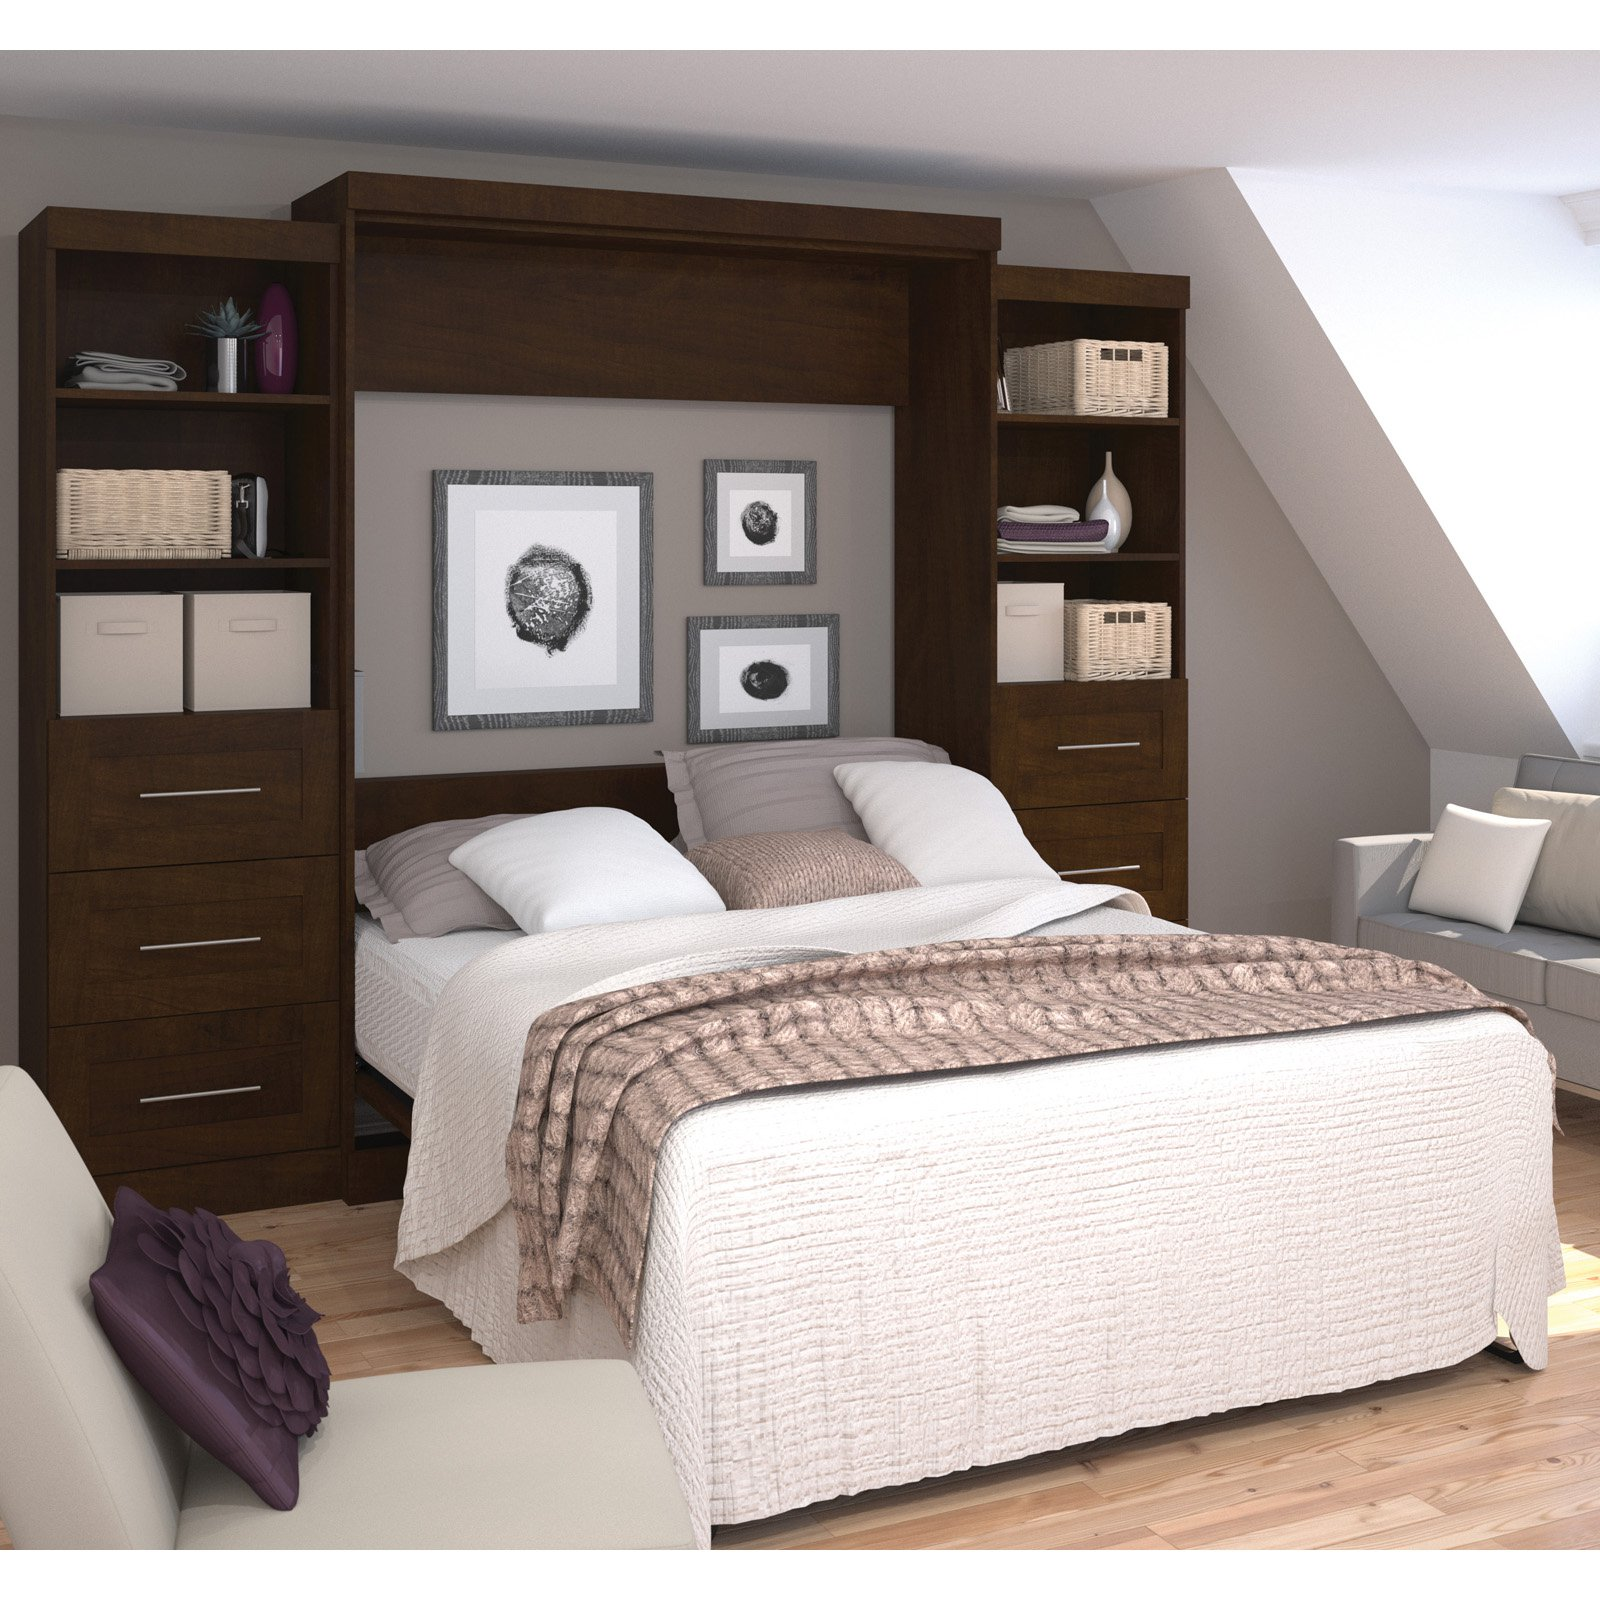 "Pur by Bestar 115"" Queen Wall bed kit in Chocolate"